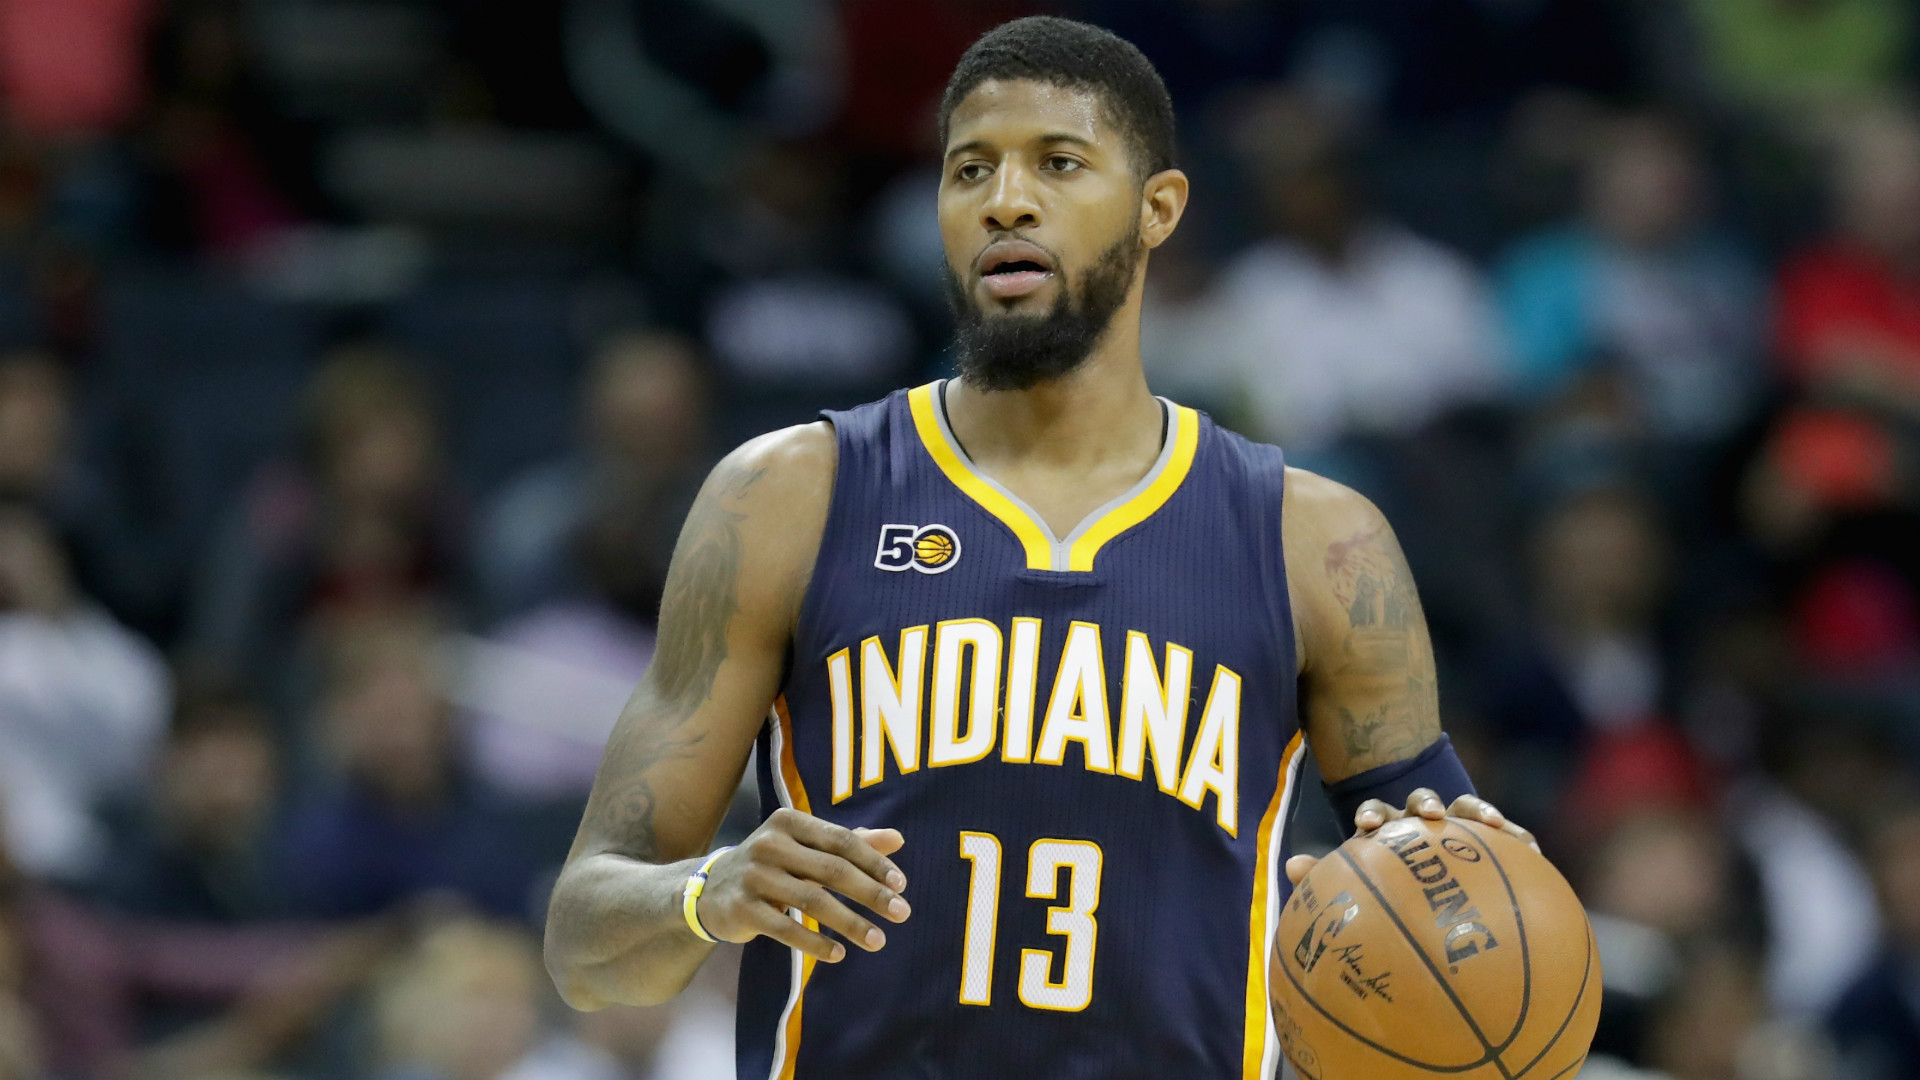 NBA trade rumors: Pacers deal Paul George to Thunder